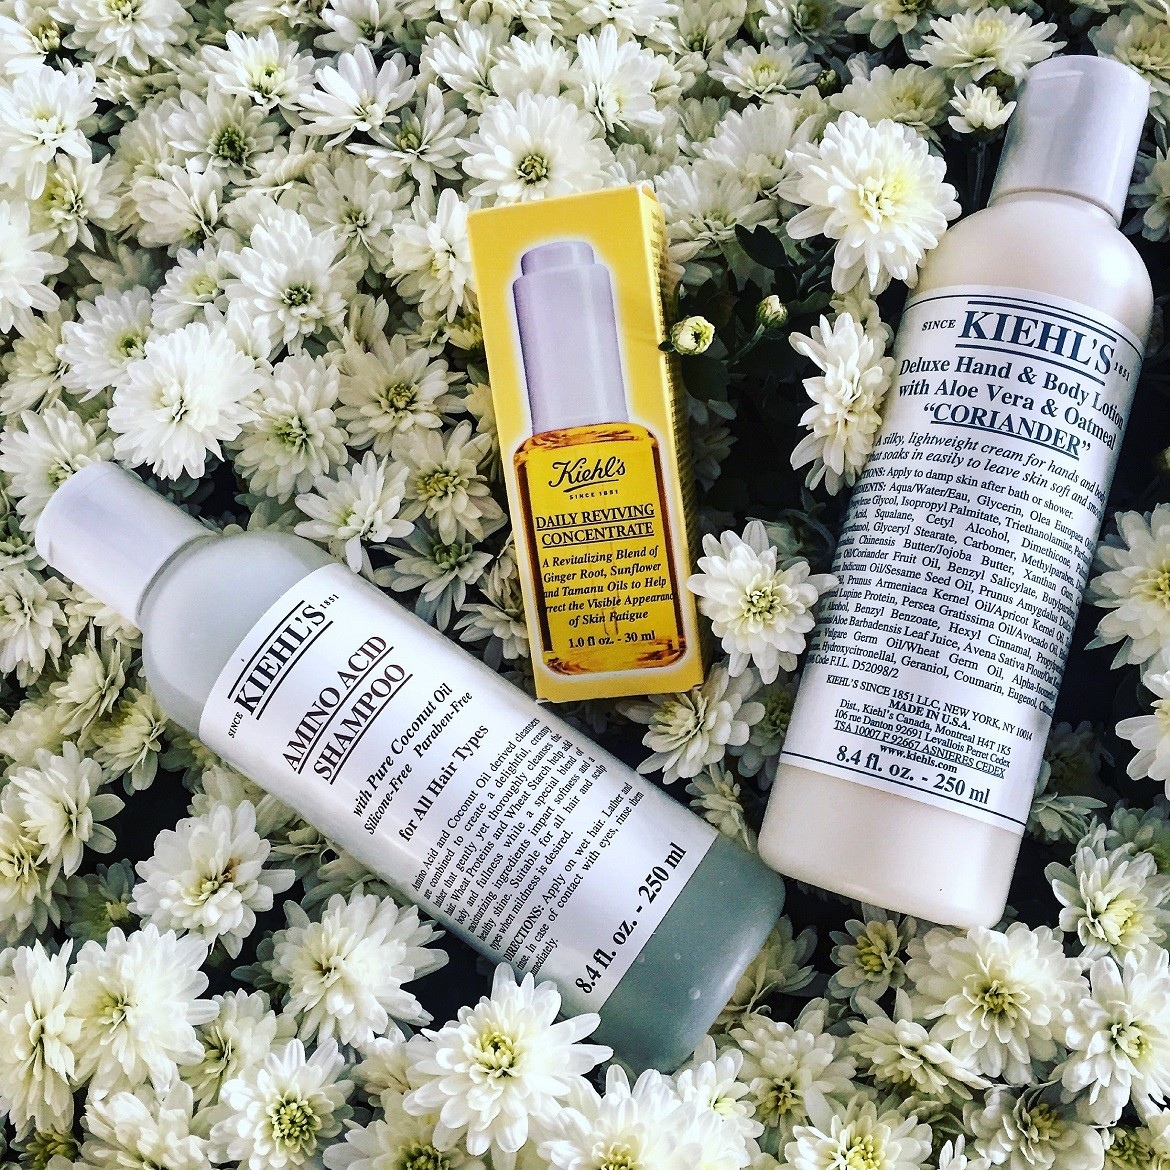 Famous Kiehl's Amino Acid Shampoo / new Daily Reviving Concentrate / silk soft Coriander deluxe hand & body lotion